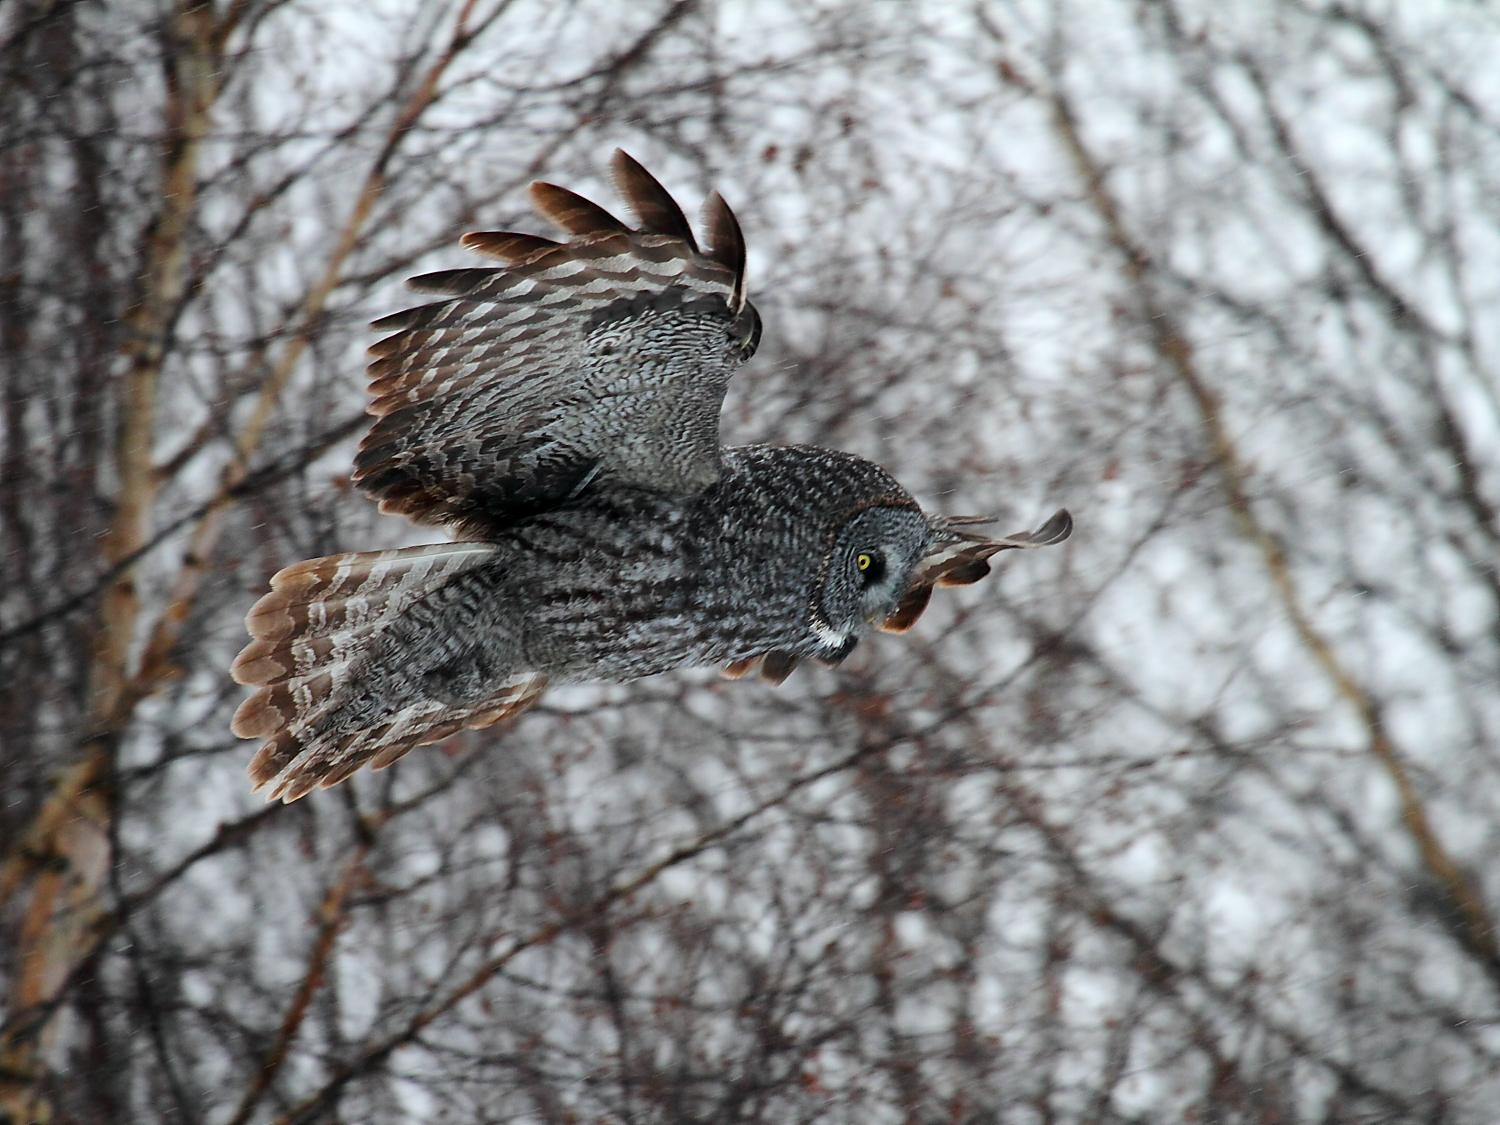 Photographing Great Gray and Northern Hawk Owls in winter